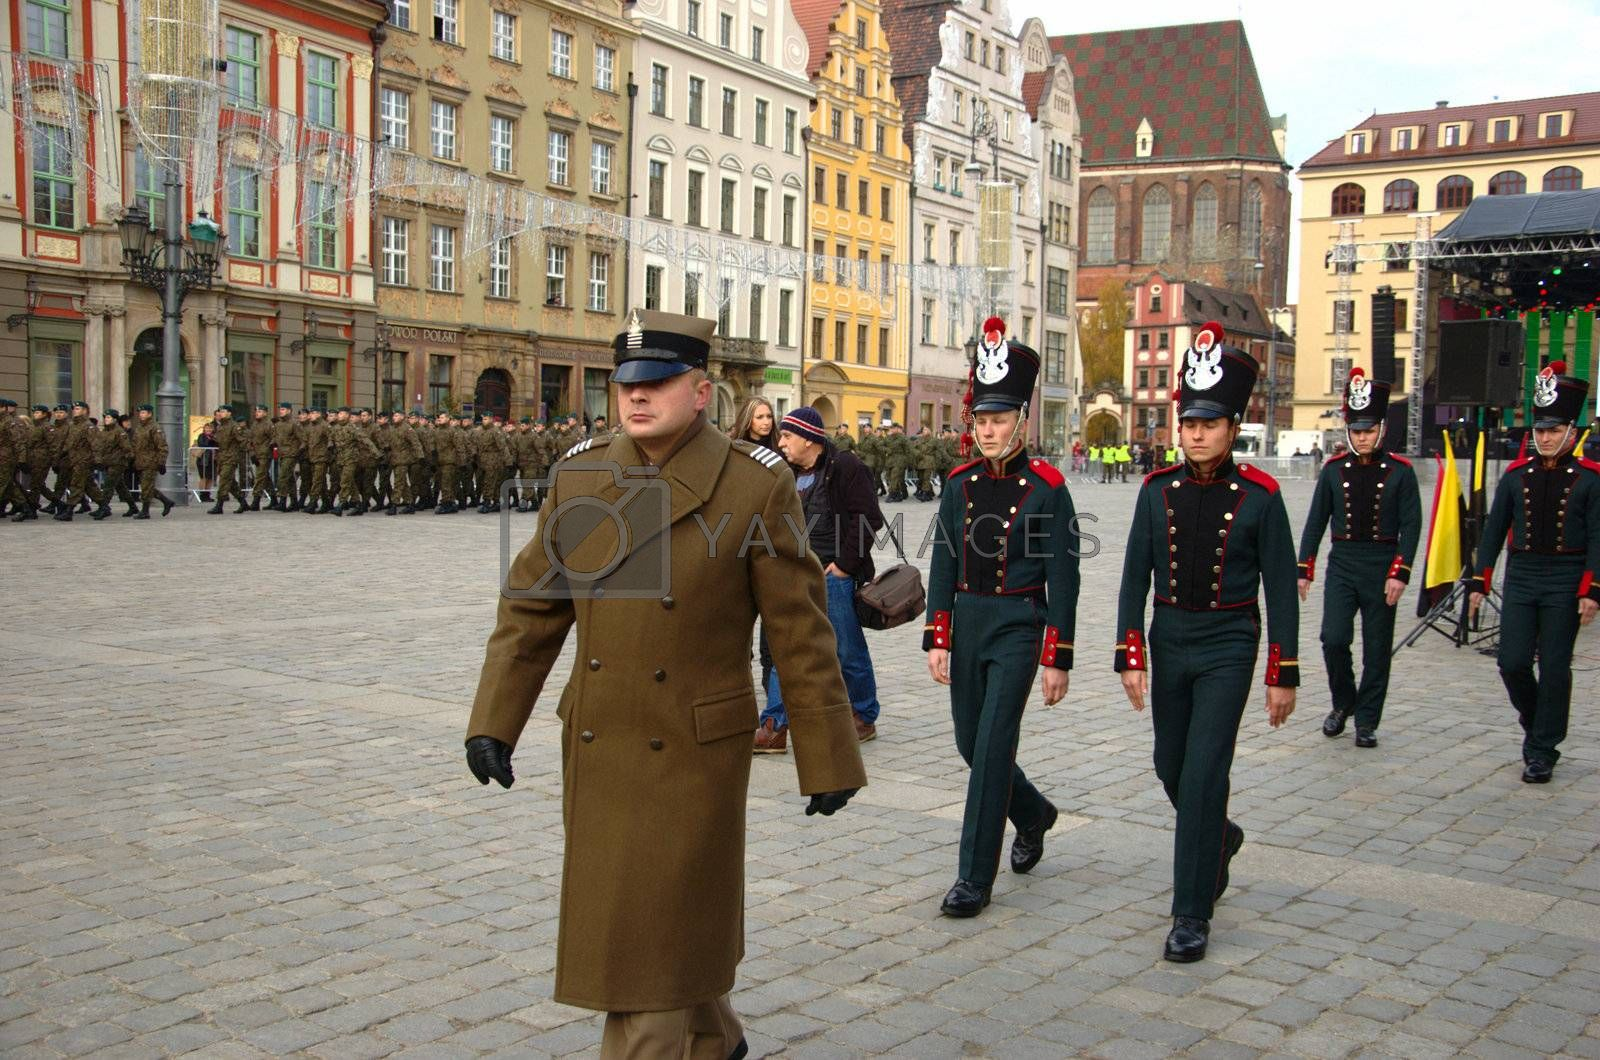 WROCLAW, POLAND - DECEMBER 2: Polish army, engineering training center for troops receives new army banner. Soldiers in historical uniforms on December 2, 2011.